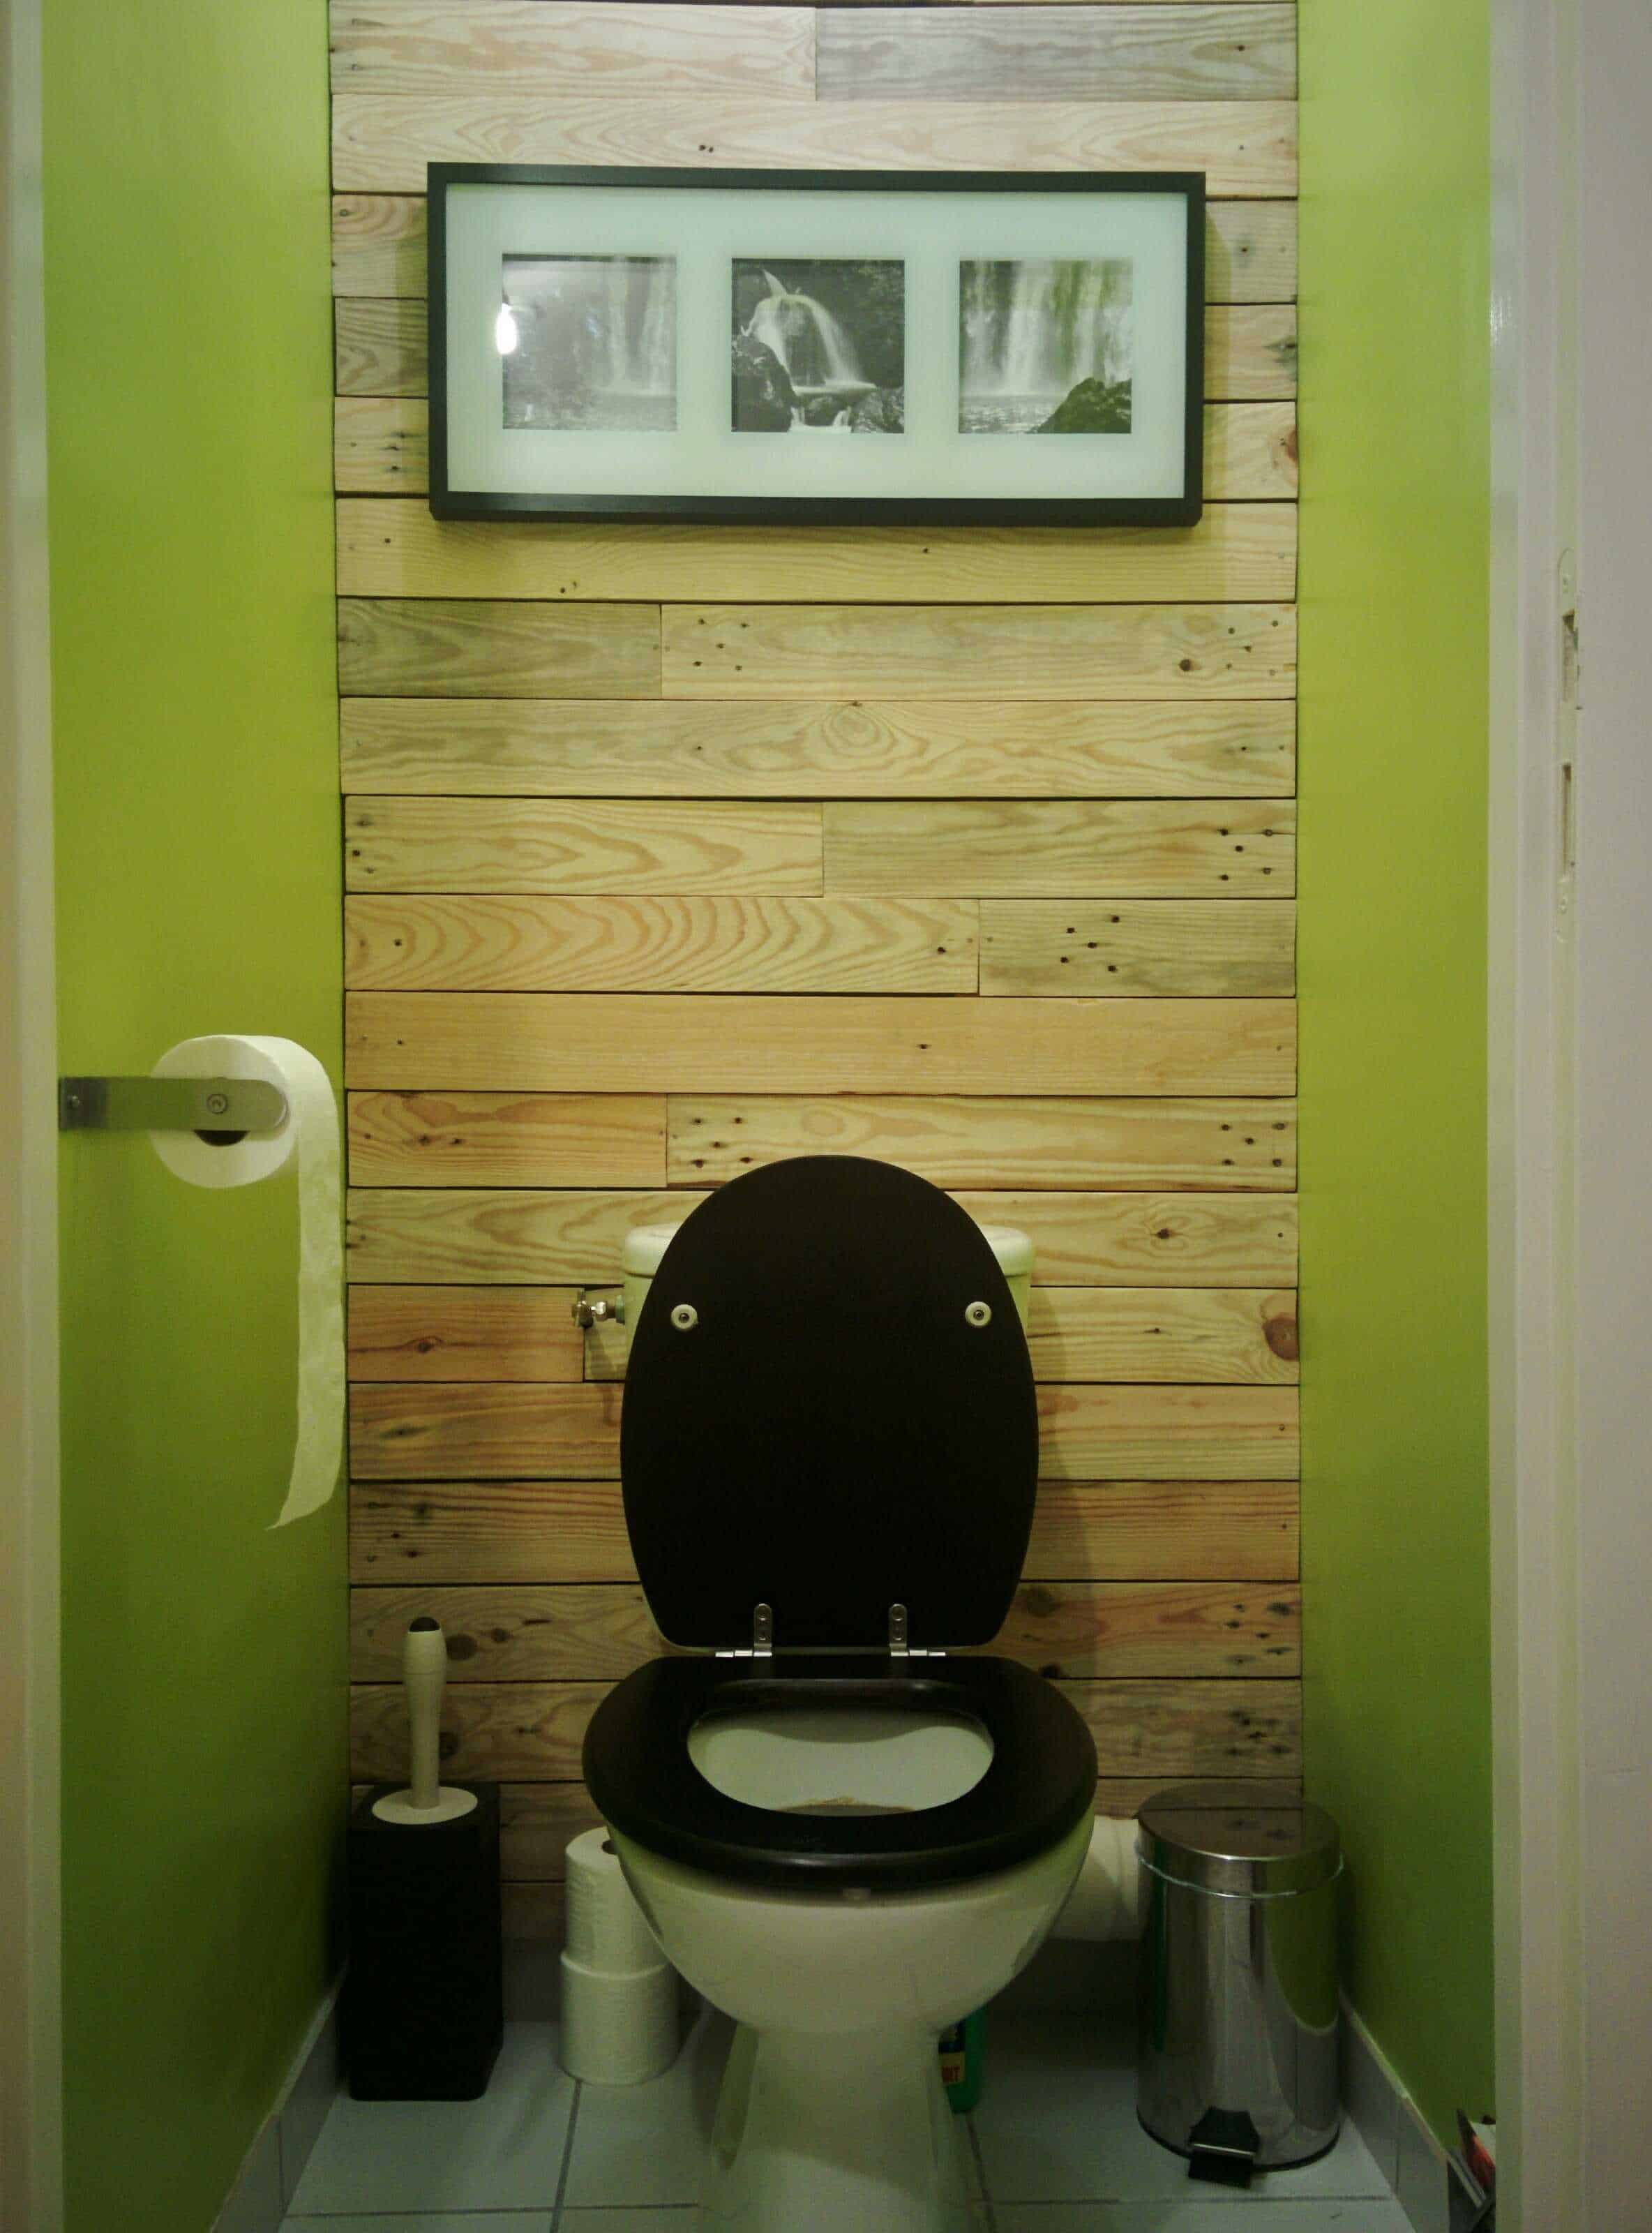 D coration de mur en bois de palettes toilet pallet wall for Decoration toilette